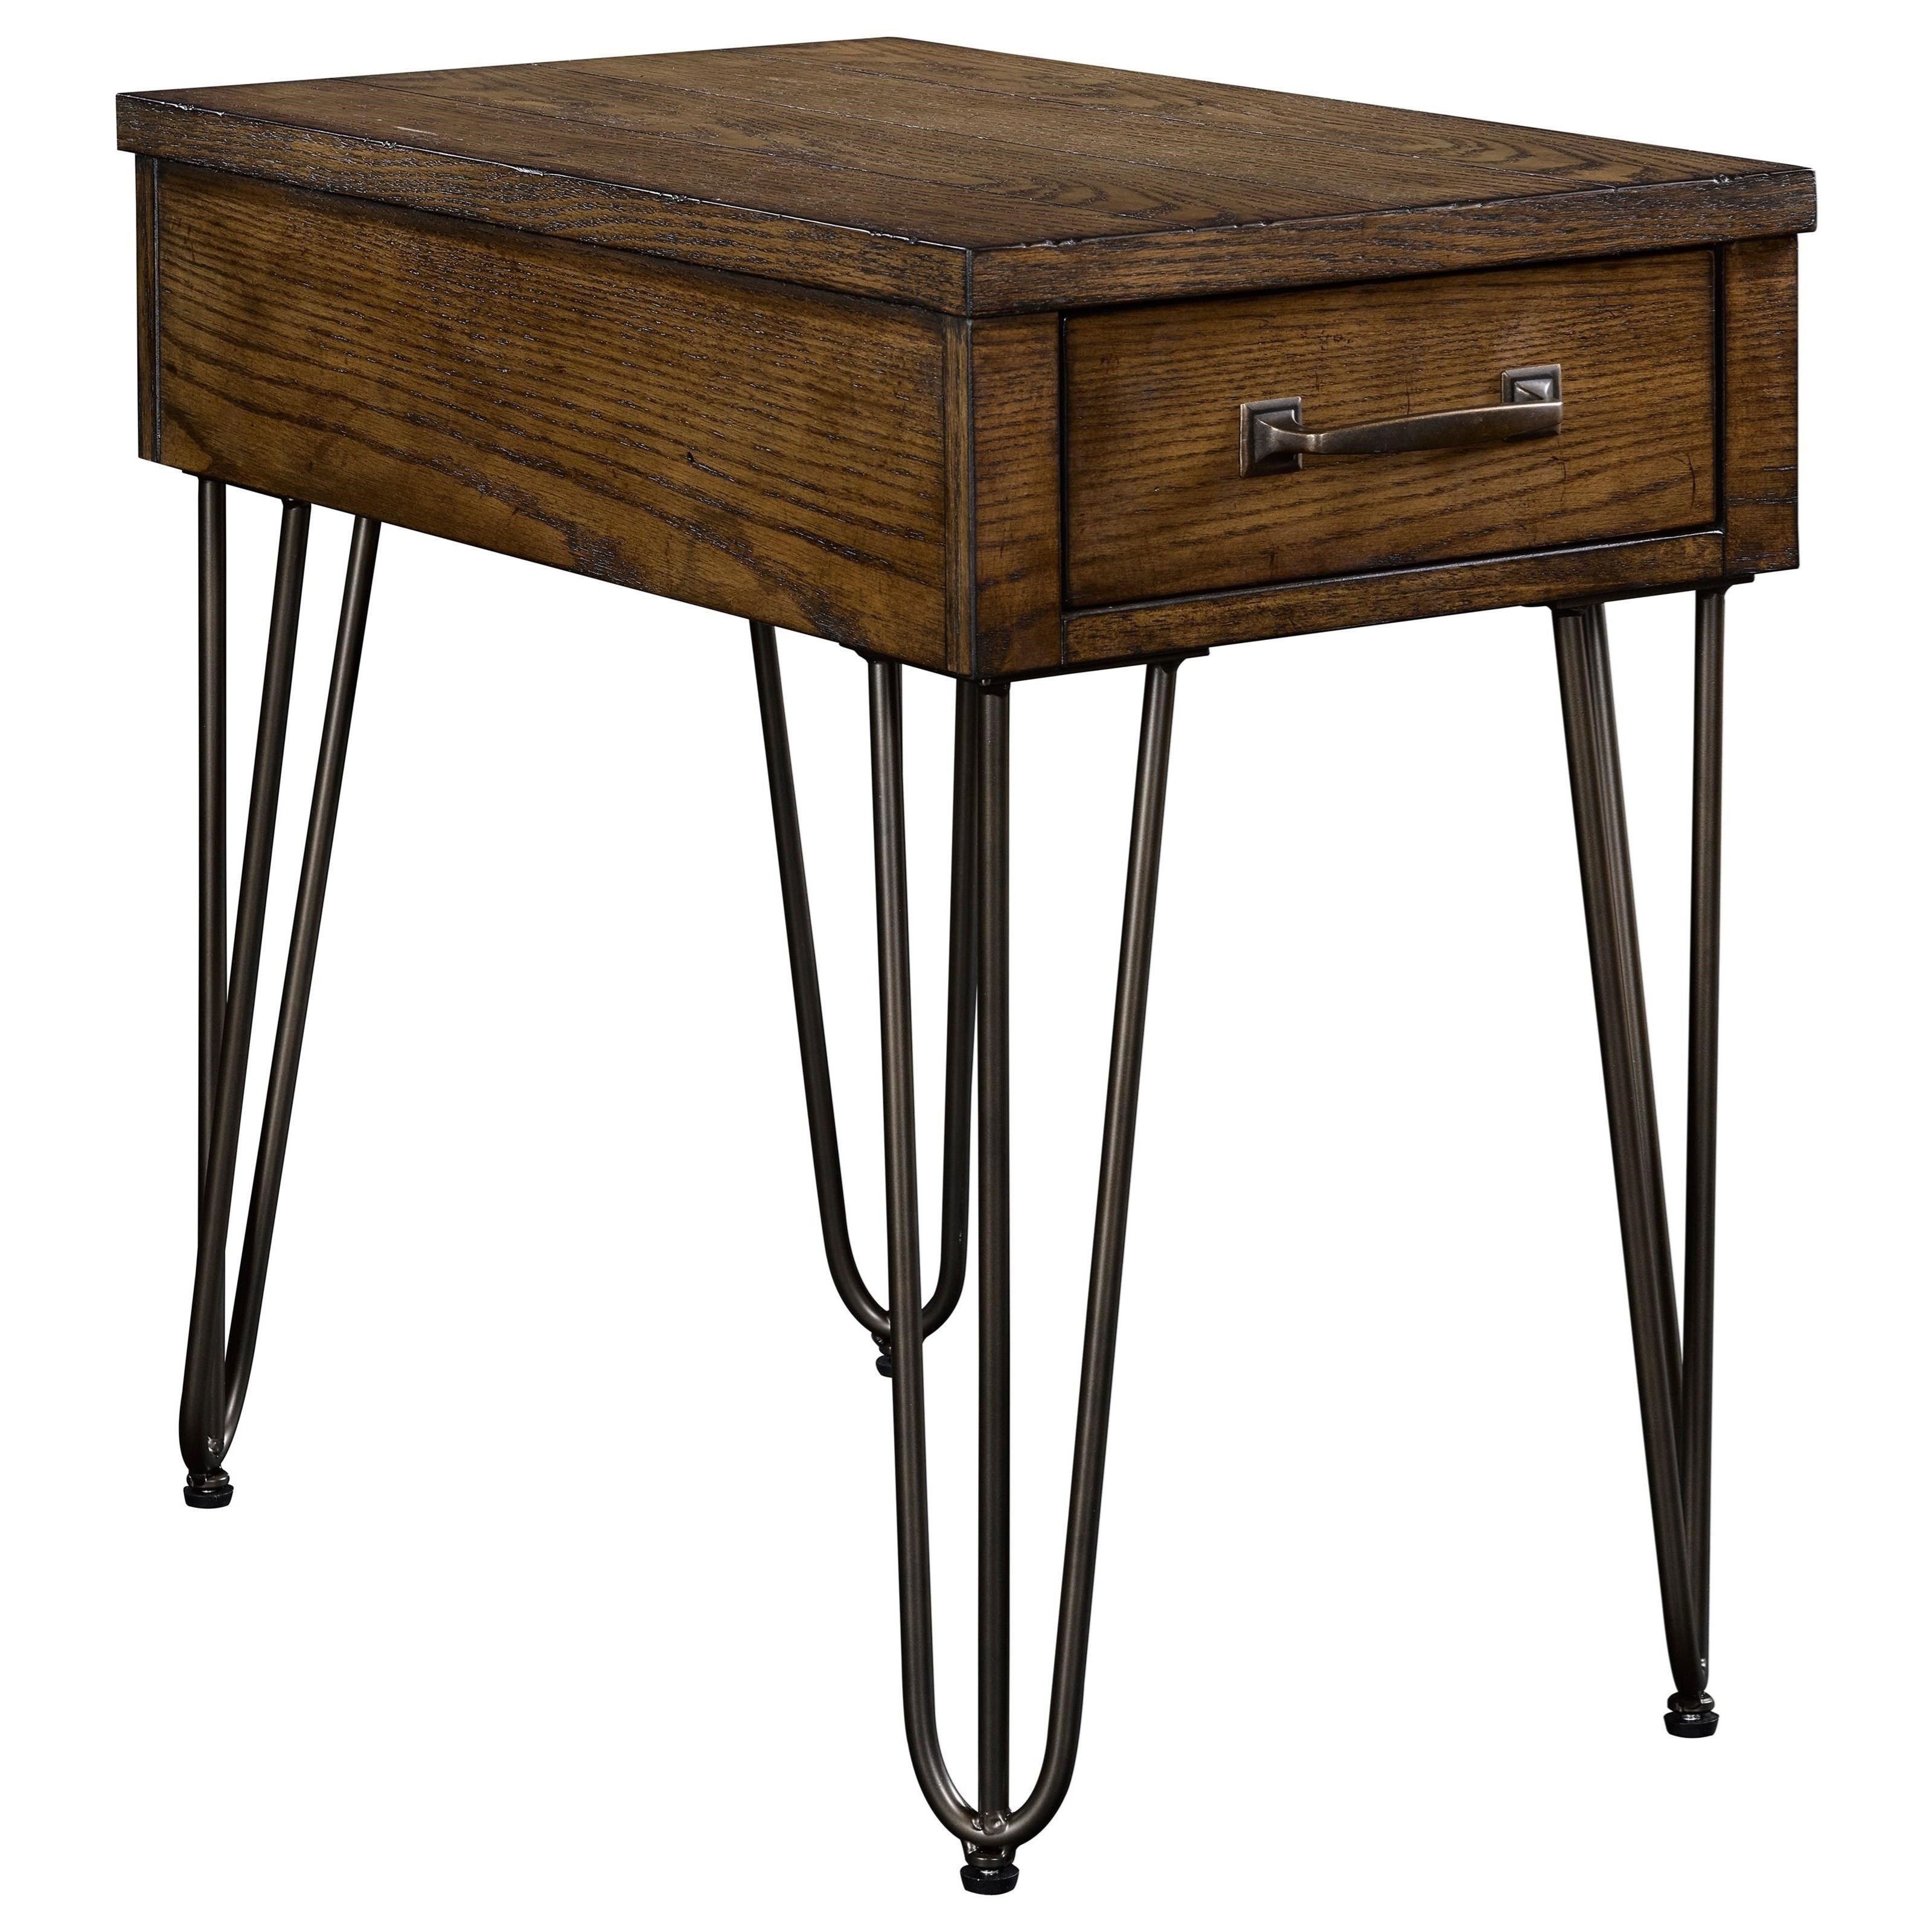 Broyhill Furniture Warren Chairside Table - Item Number: 3121-004